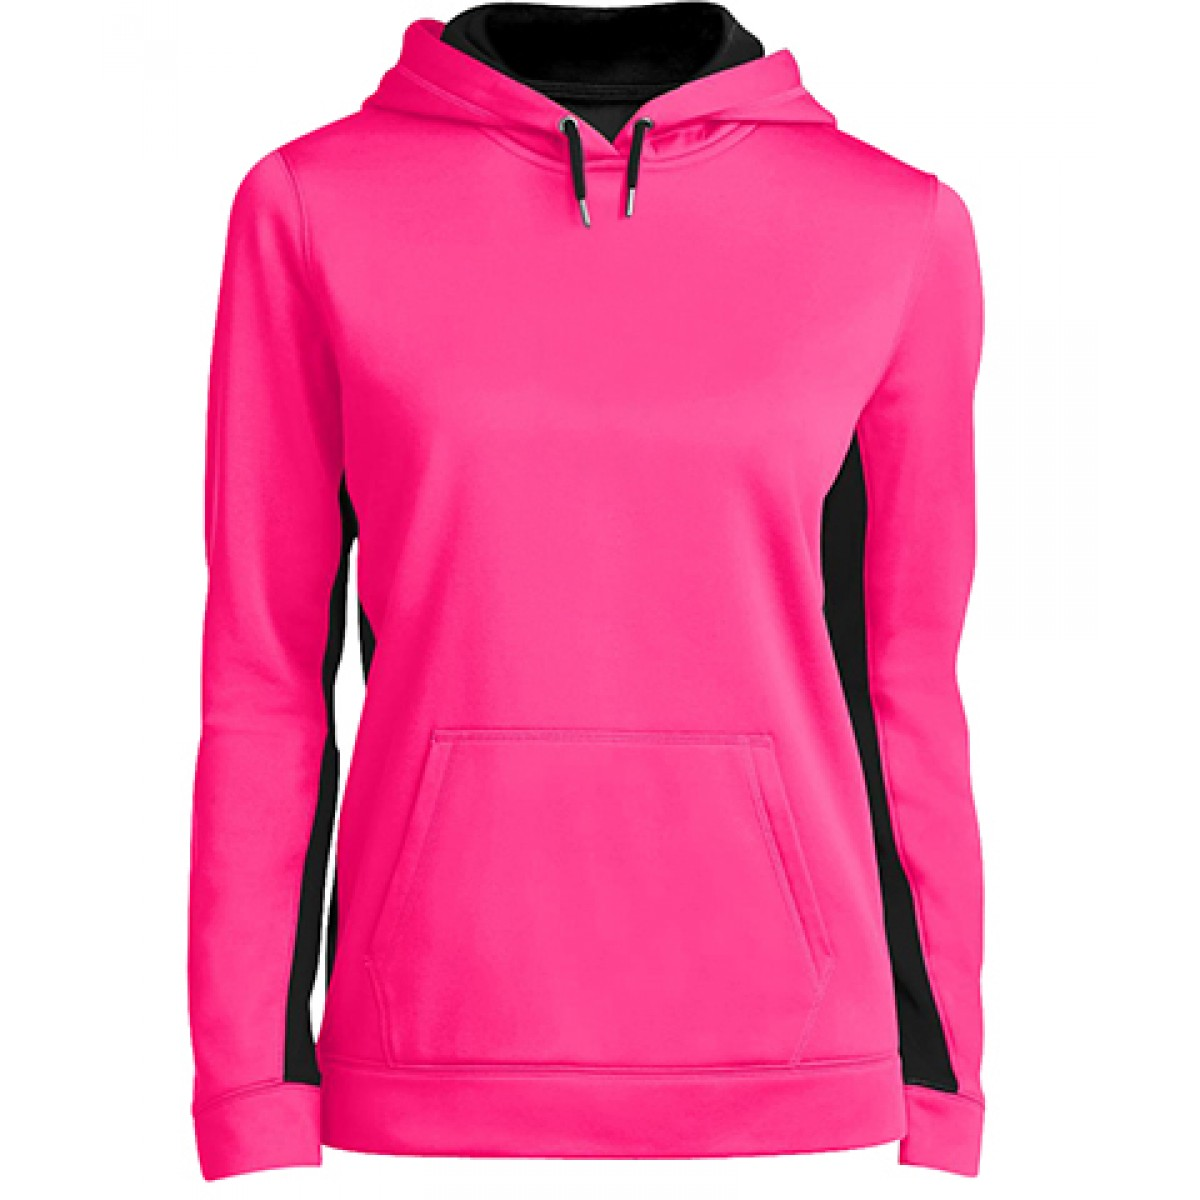 Ladies Colorblock Hooded Pullover-Neon Pink Black-XL